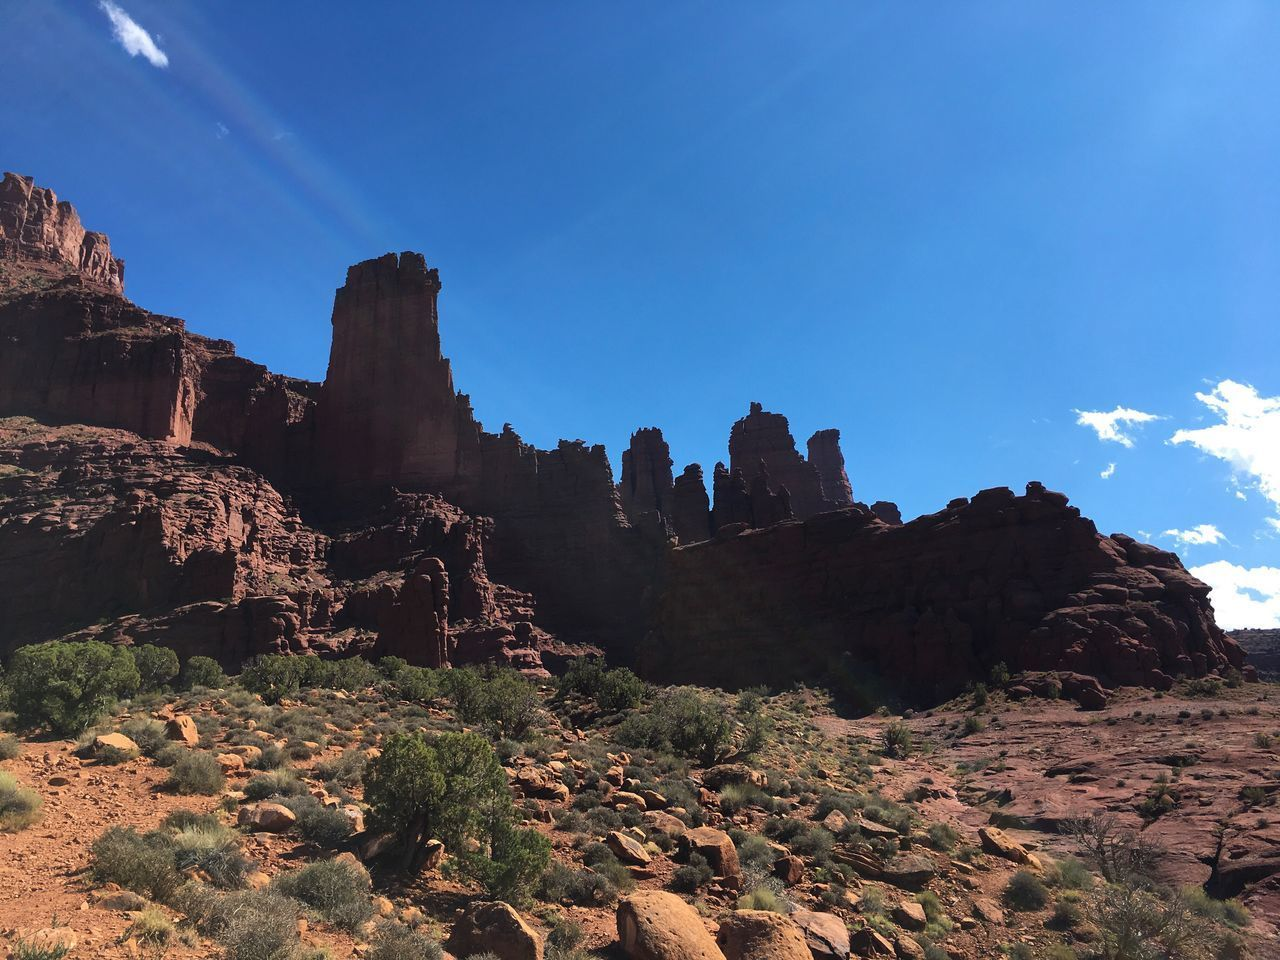 rock formation, rock - object, geology, nature, cliff, mountain, sky, beauty in nature, no people, day, outdoors, rock hoodoo